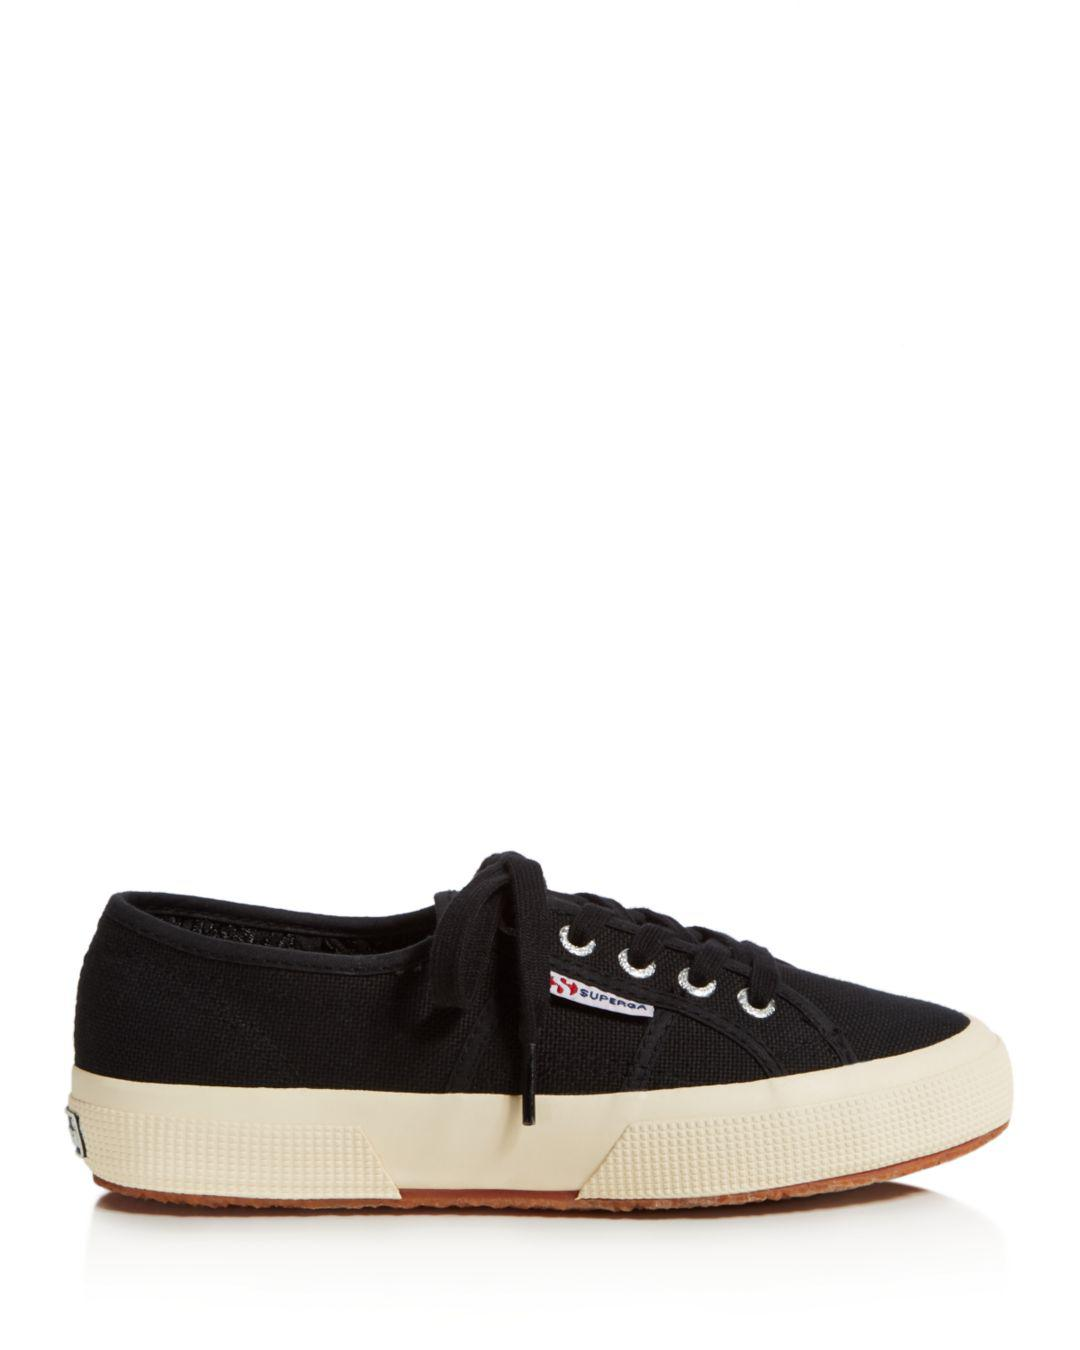 Superga Canvas Classic Lace Up Sneakers in Grey Sage (Grey)